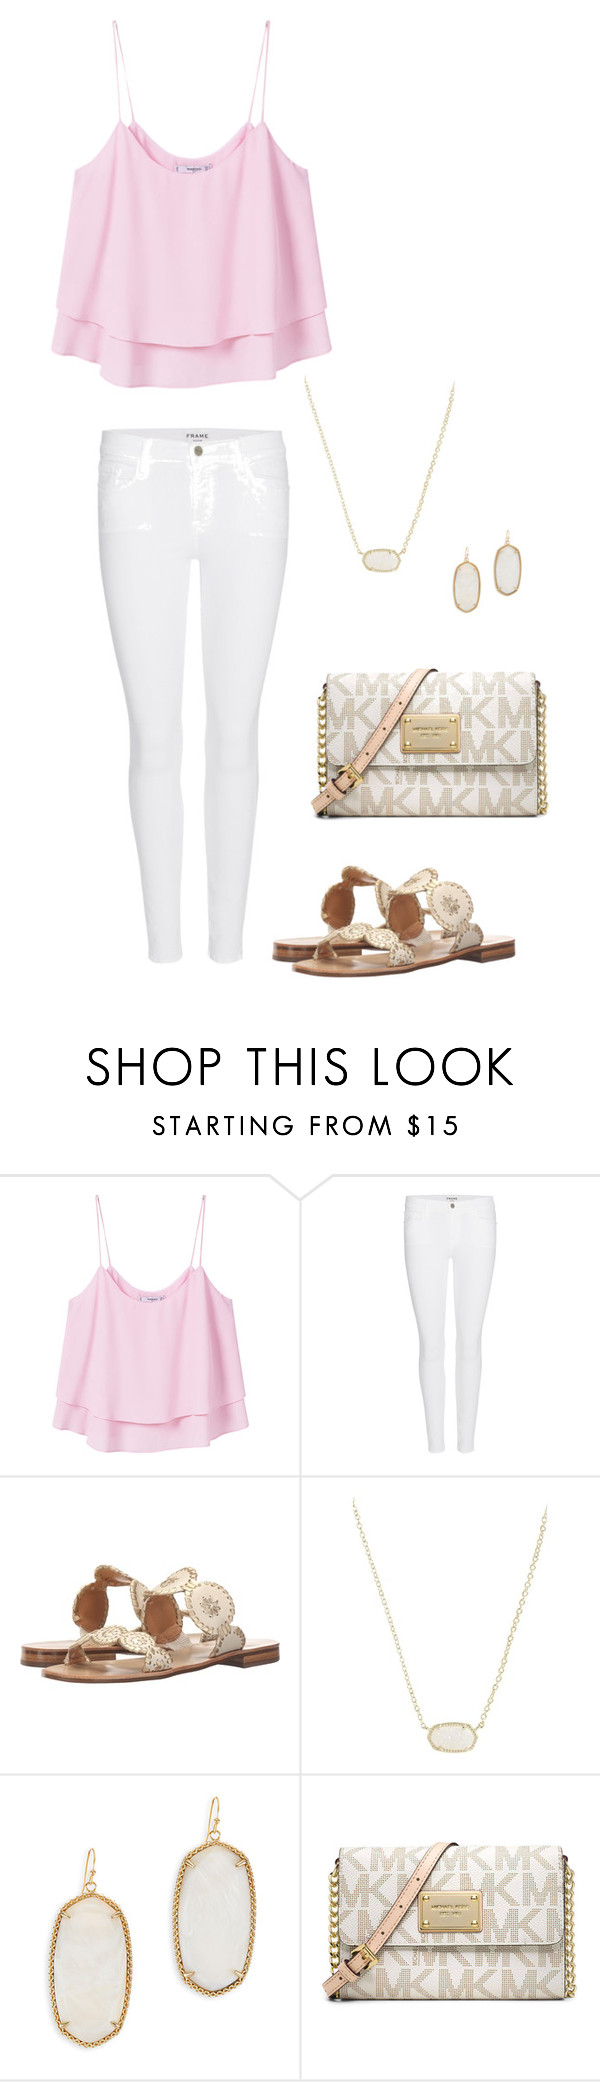 """""""Pink&Gold are perfect!"""" by laurenz04 on Polyvore featuring MANGO, Frame Denim, Jack Rogers, Kendra Scott and Michael Kors"""